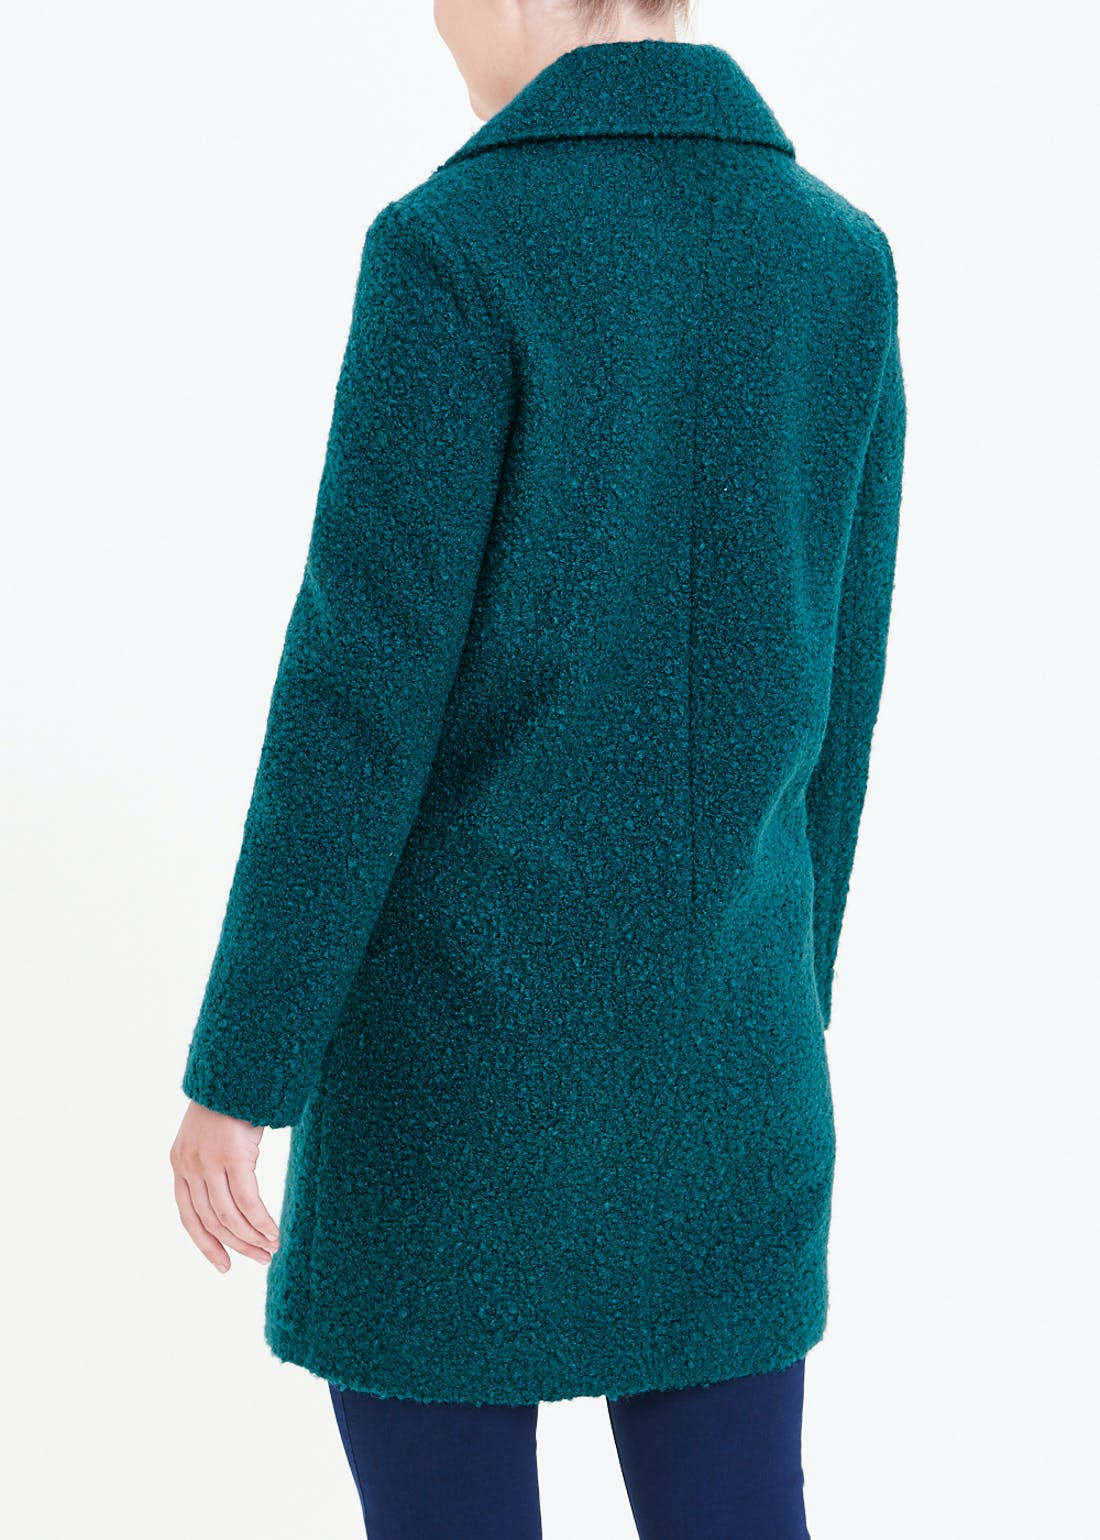 Teal Boucle Double Breasted Coat